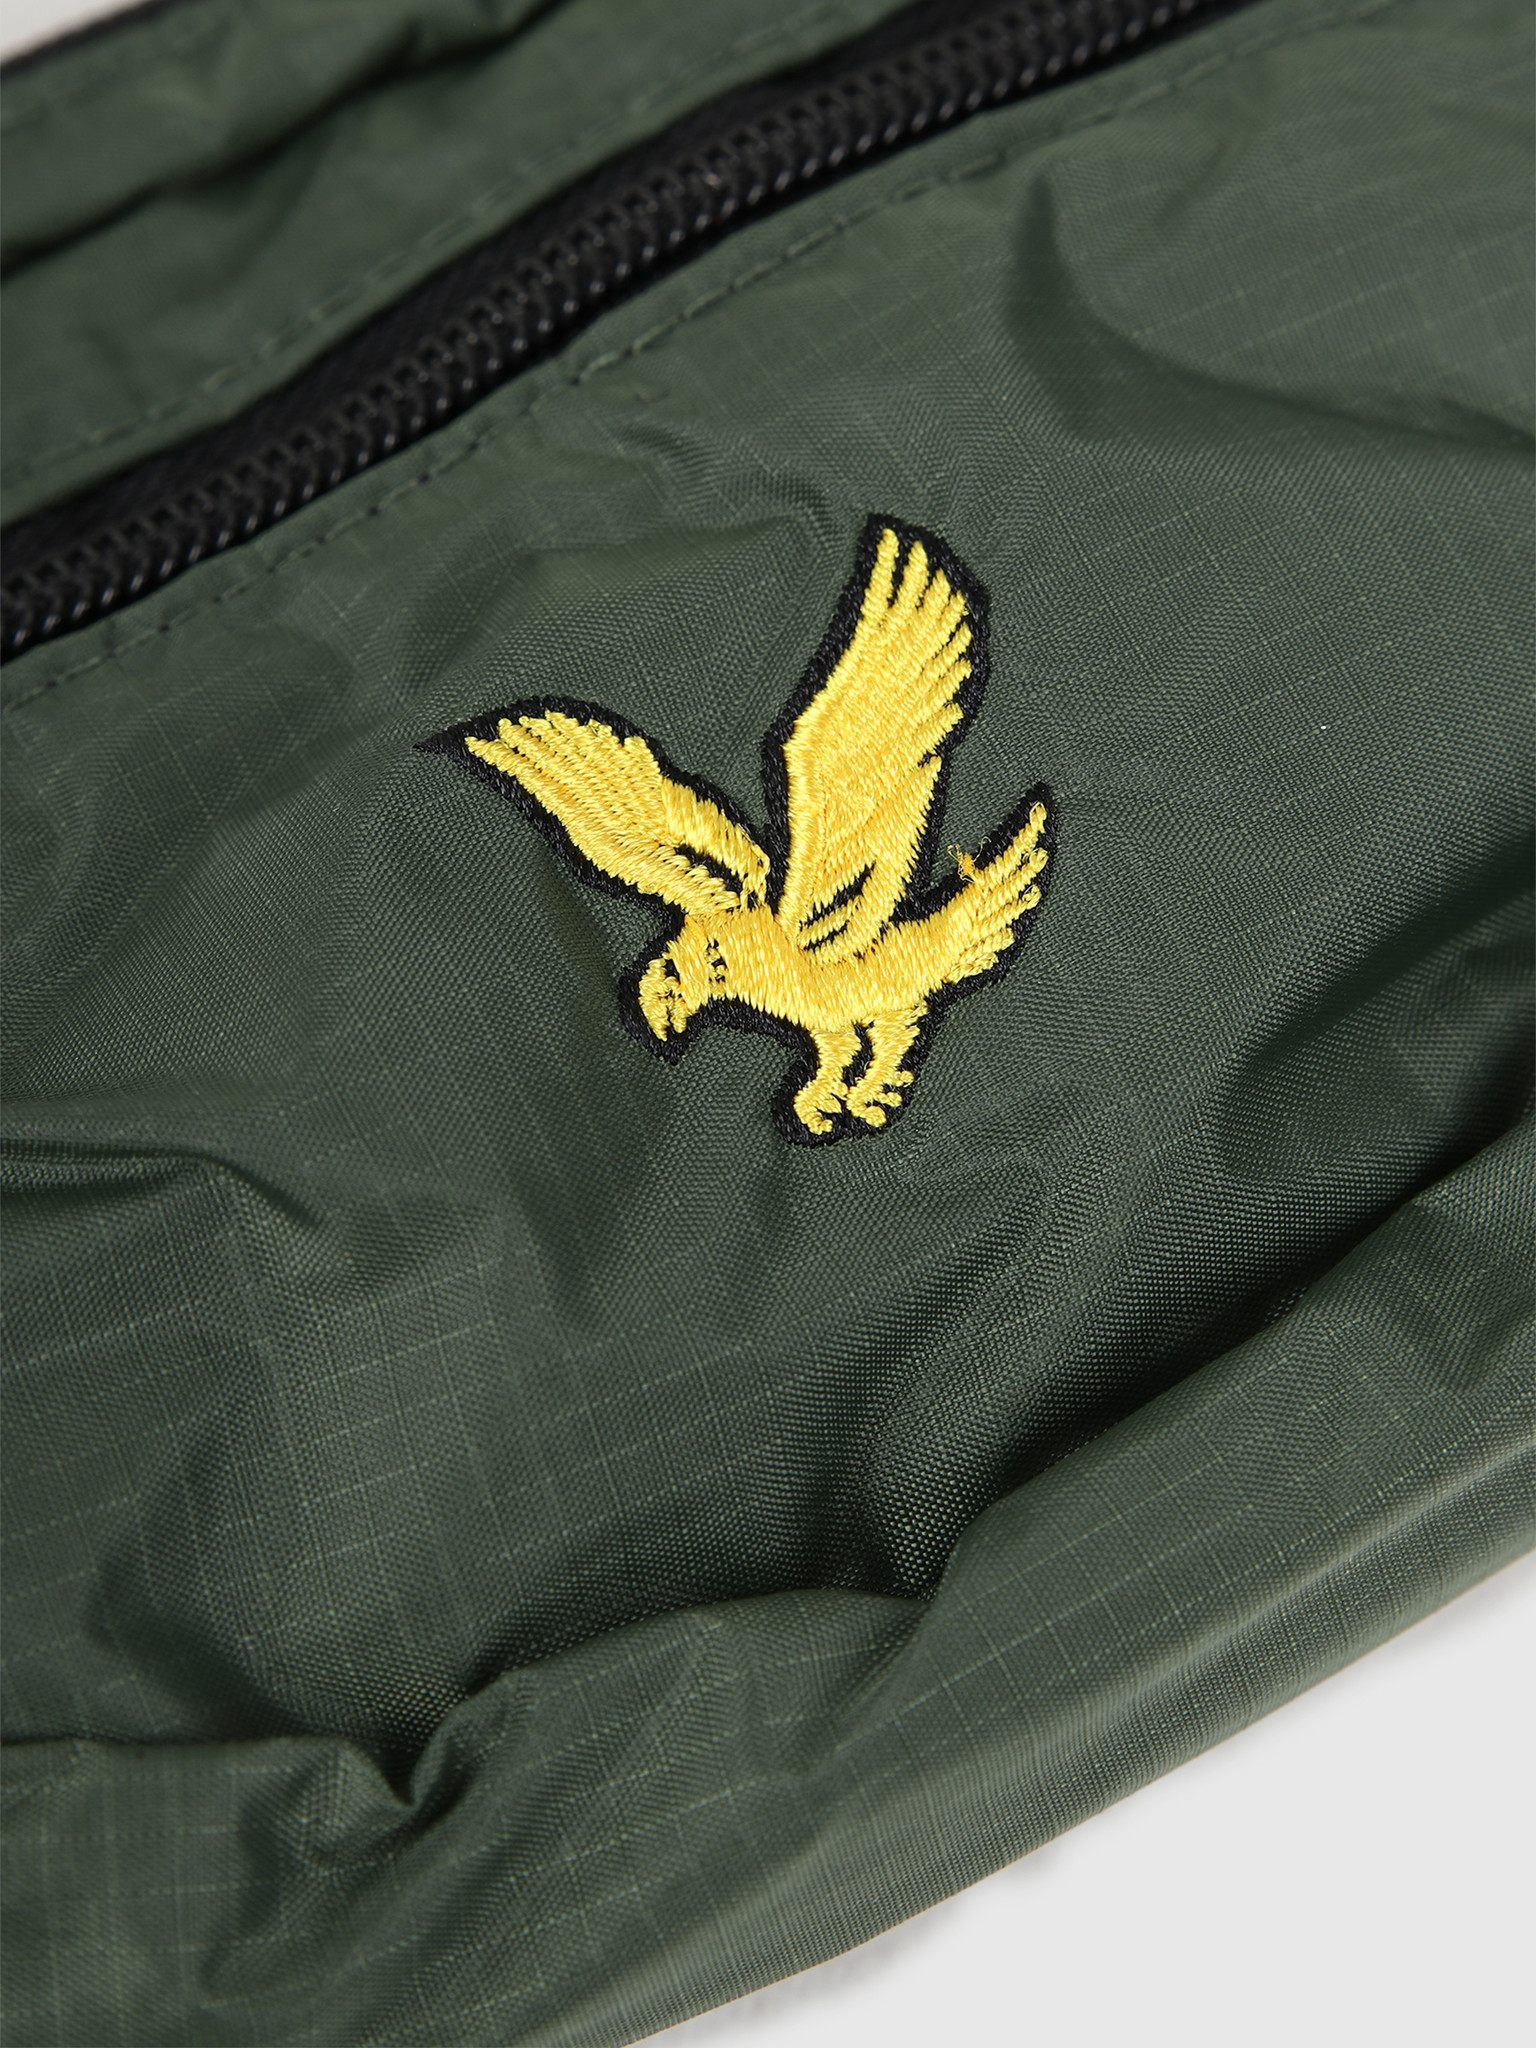 Lyle and Scott Lyle and Scott Ripstop Utility Bag green BA1215A